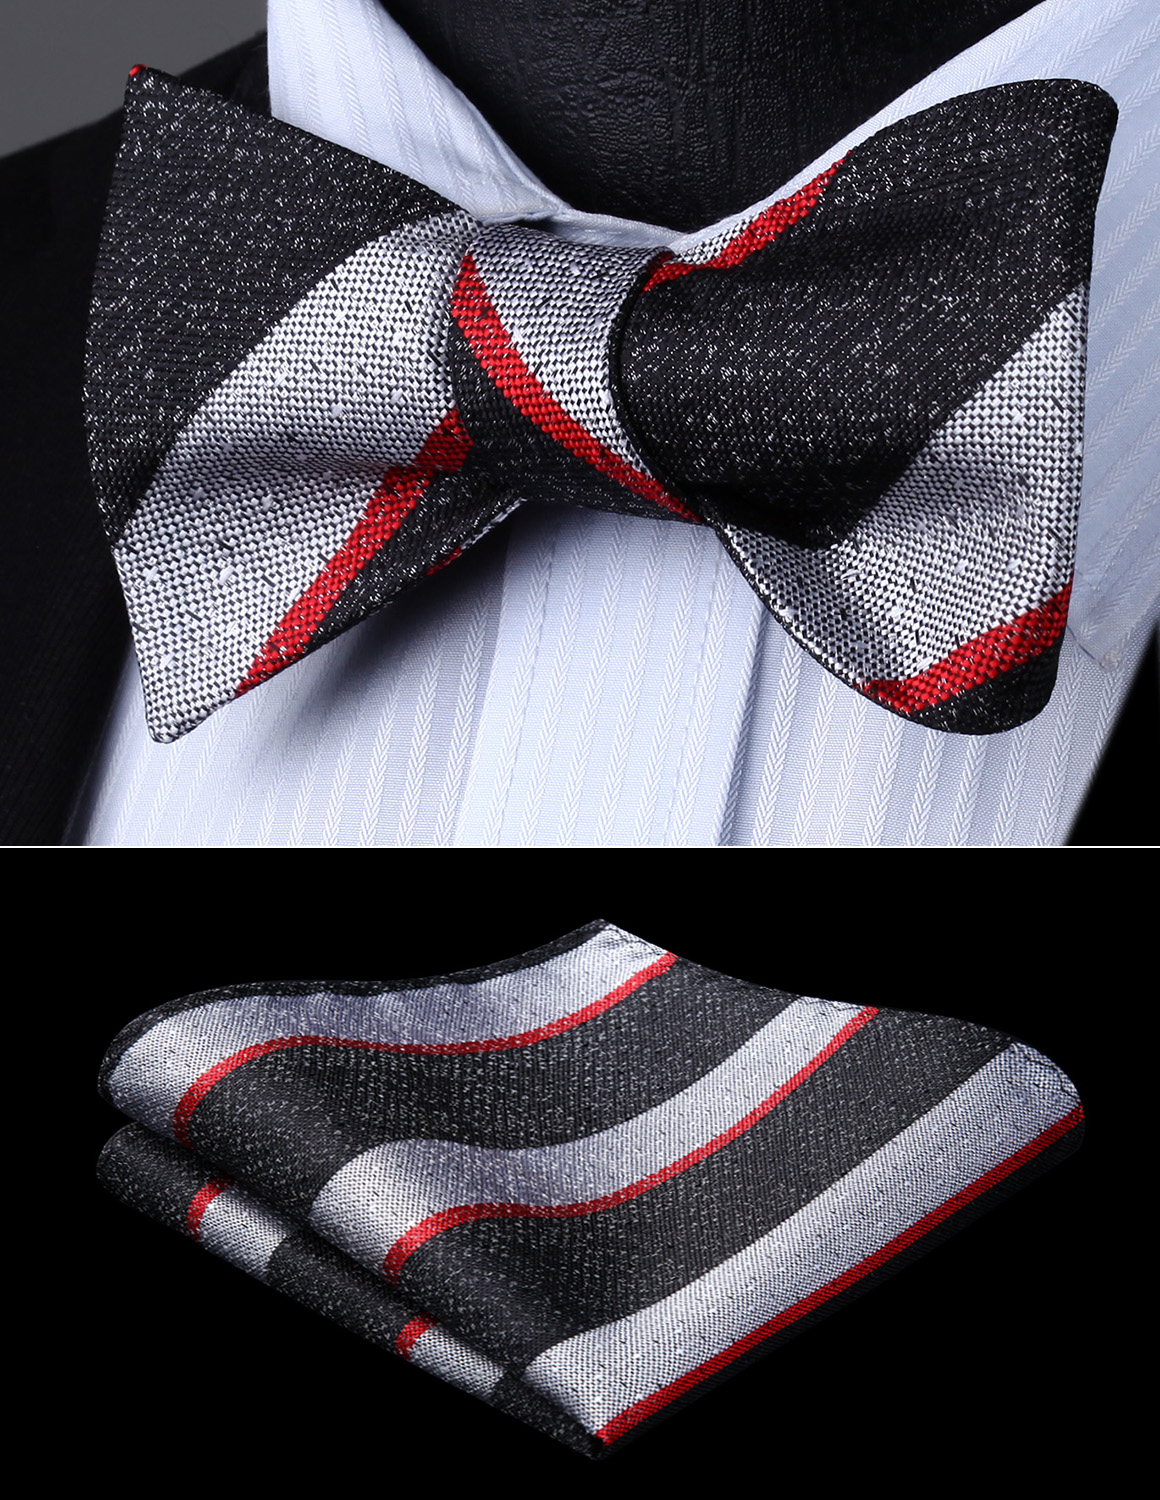 Striped Pocket Square Red and Black woven handkerchief